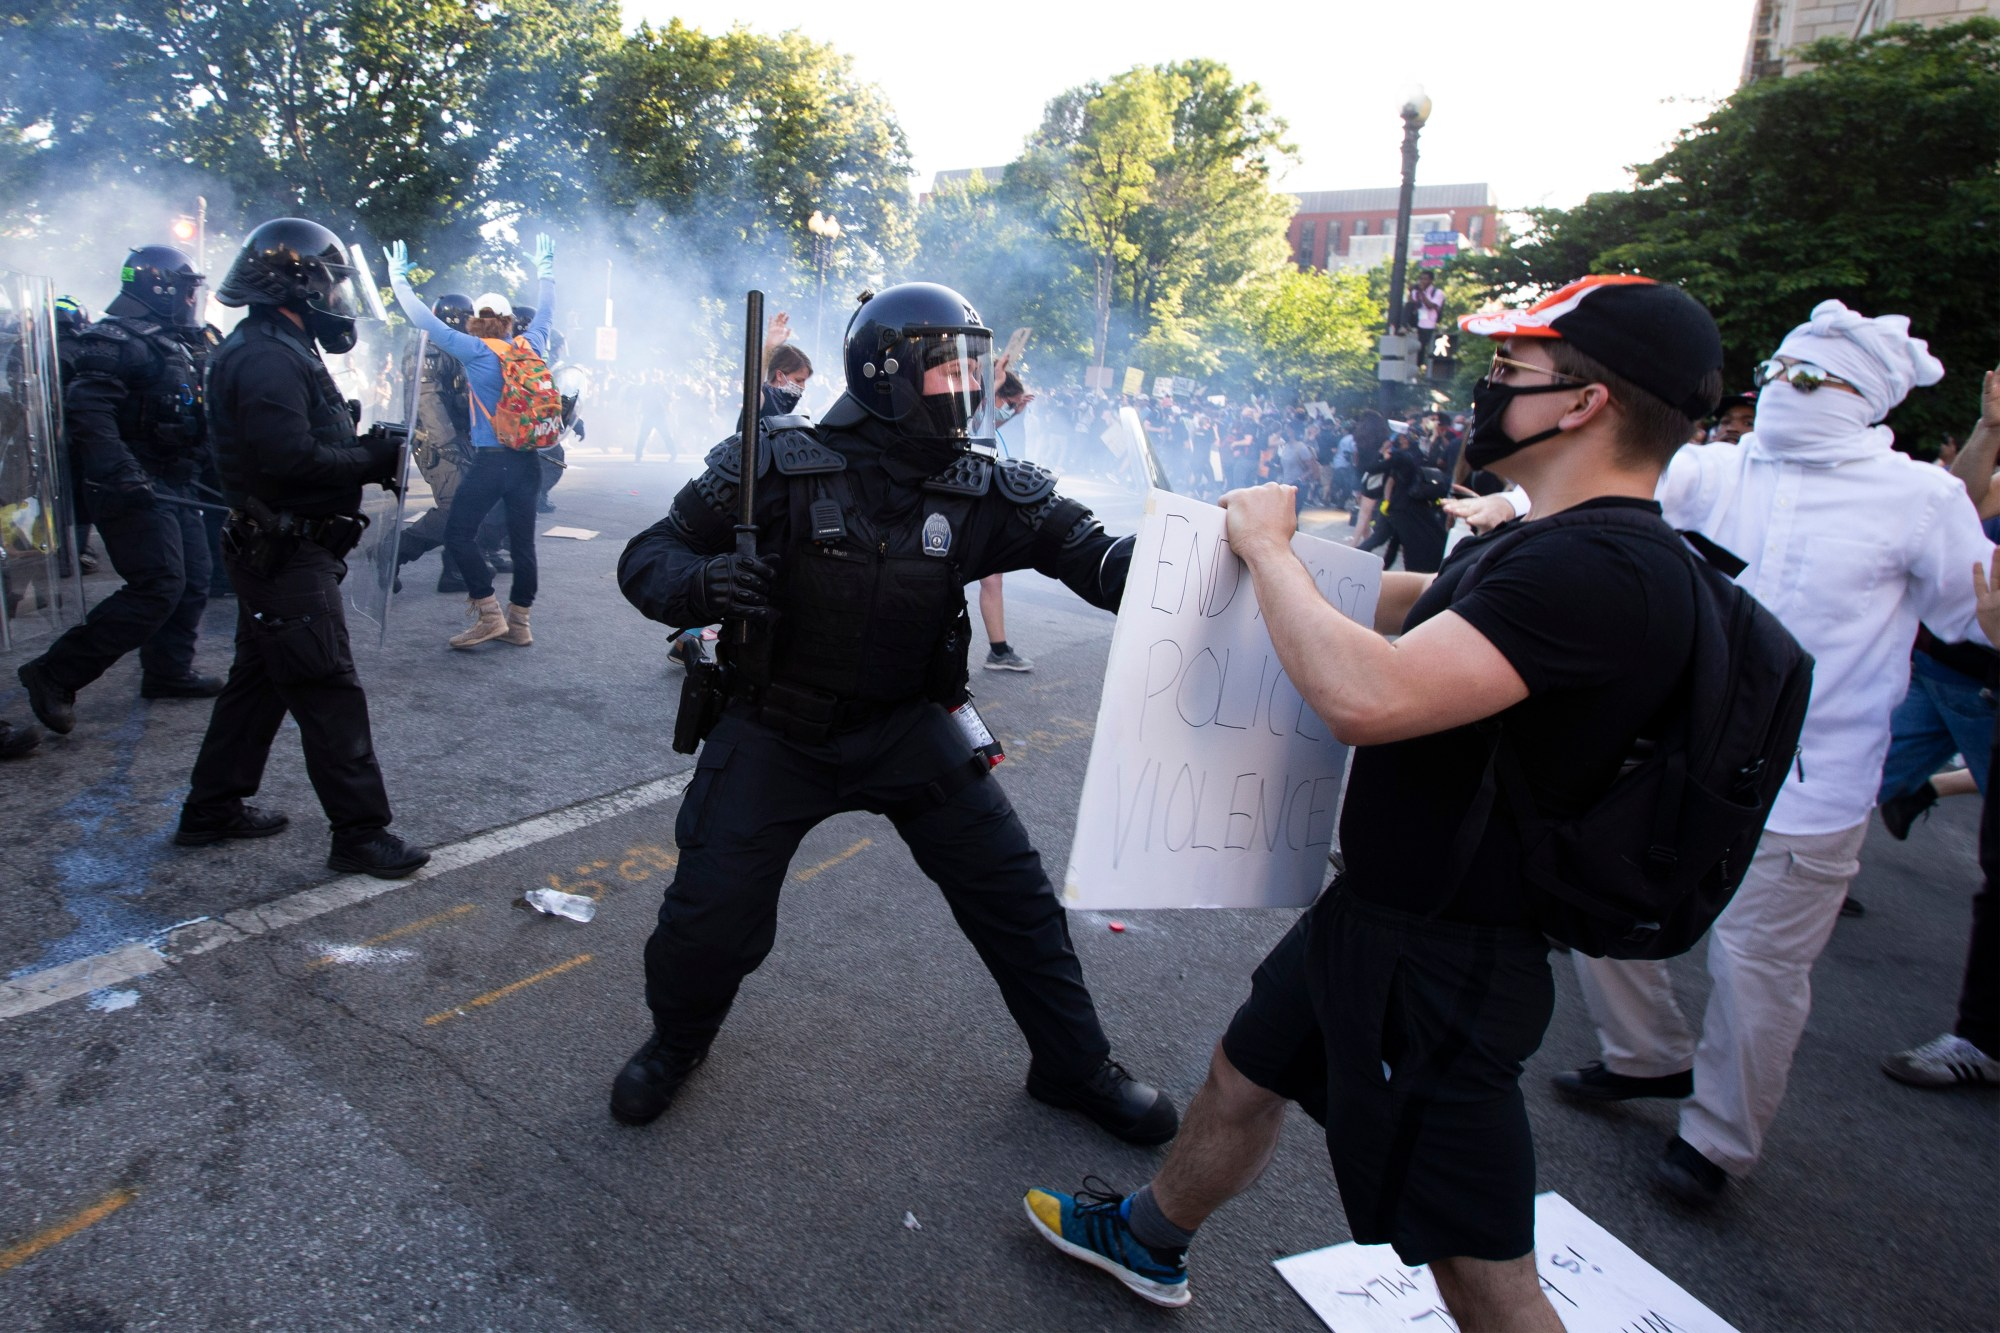 Police officers clash with protestors near the White House on June 1, 2020, as demonstrations against George Floyd's death continue. (Jose Luis Magana / AFP / Getty Images)